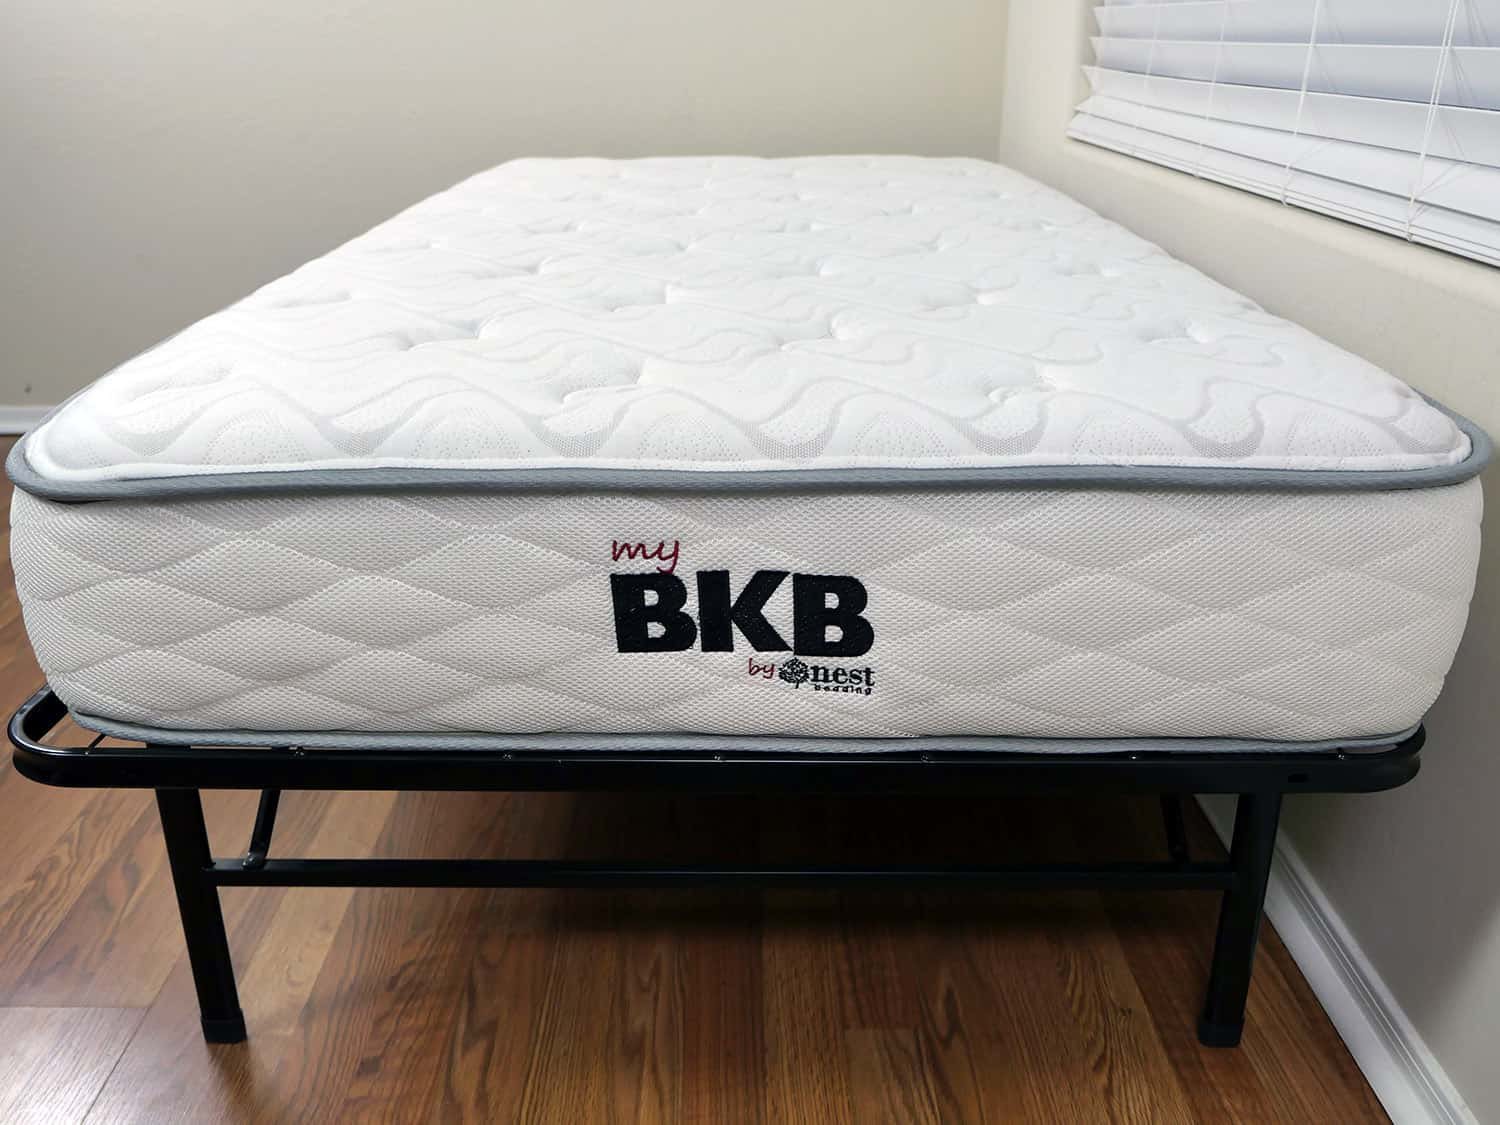 Ikea Twin Mattress Bkb Big Kid Bed Mattress Review | Sleepopolis